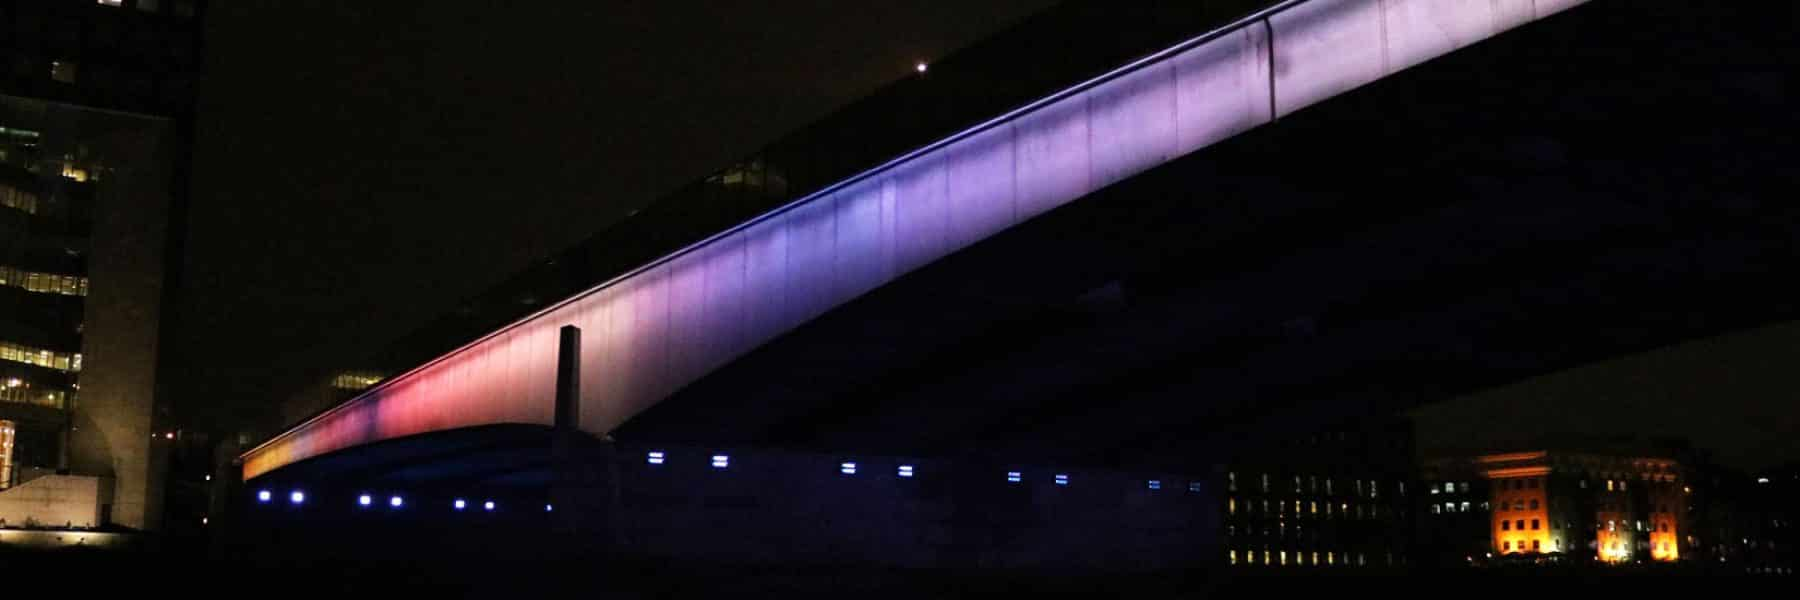 The Illuminated River Project